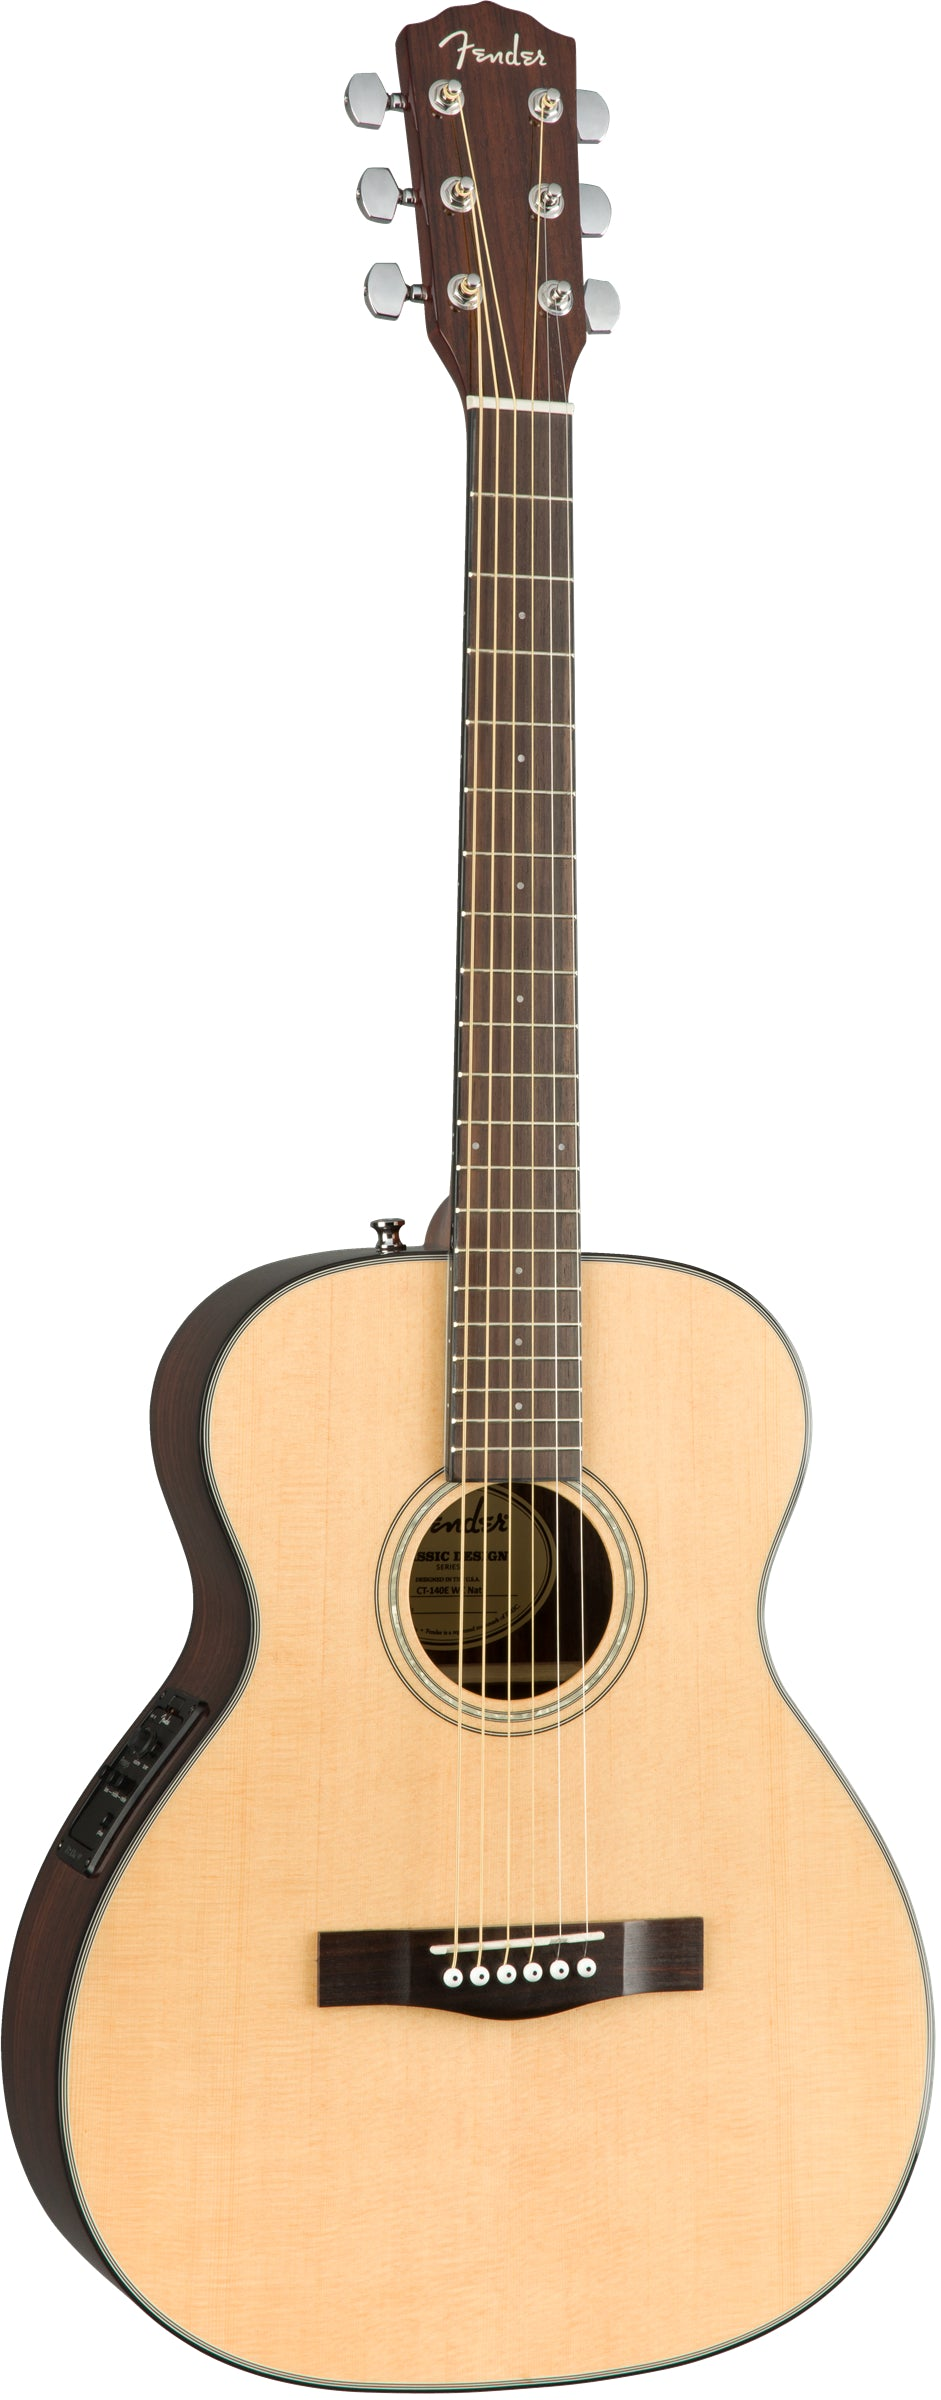 Fender CT-140SE Travel Size Acoustic Electric Guitar, With Case